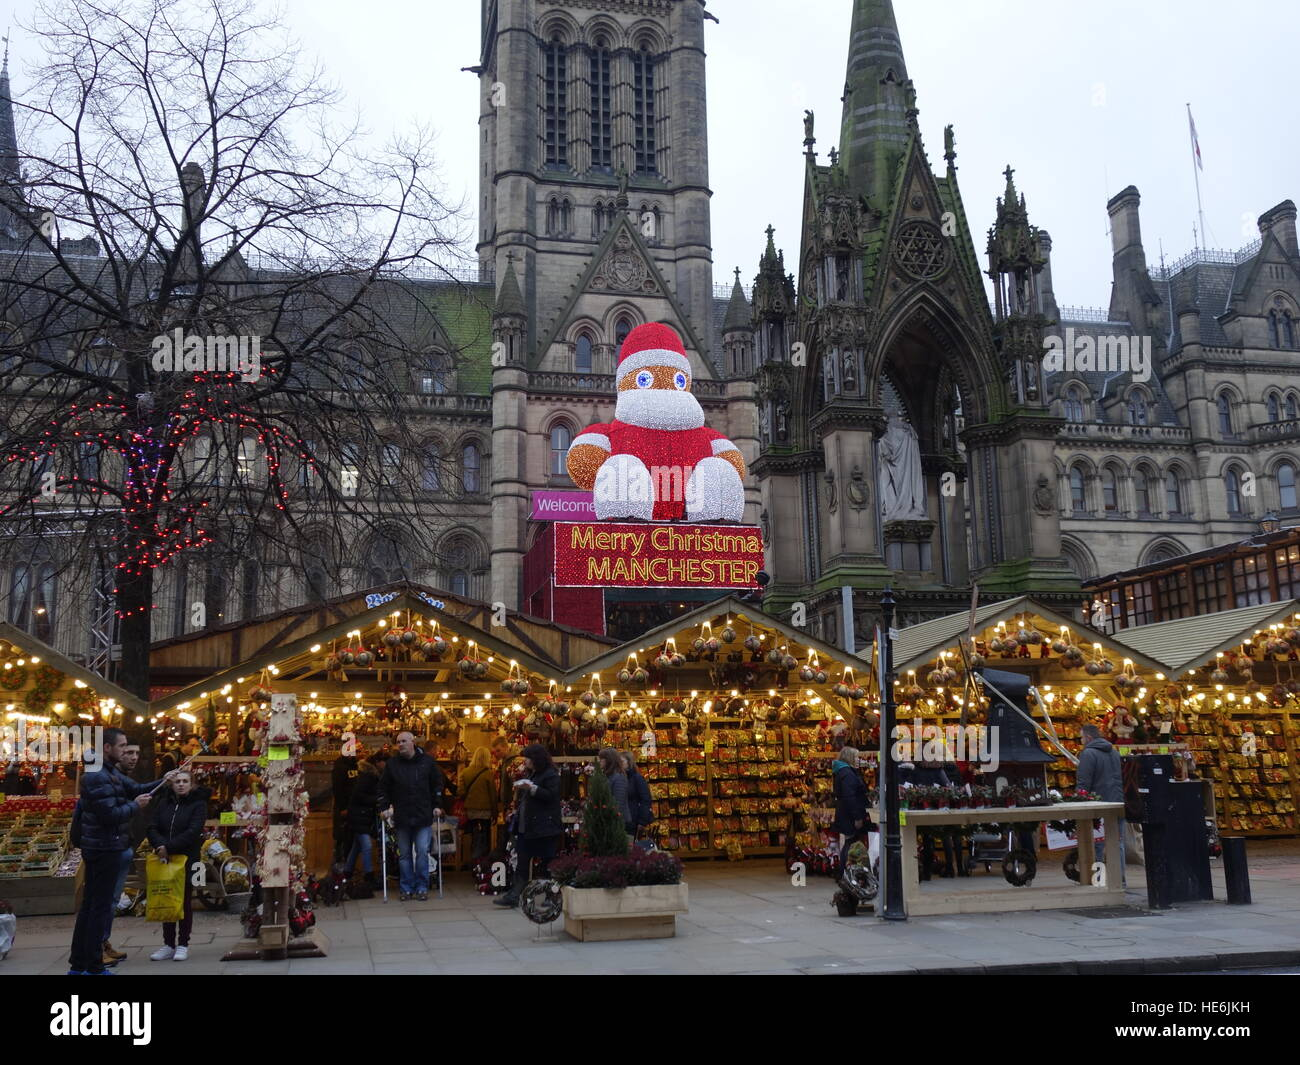 The Manchester Christmas Markets 2016 - Stock Image